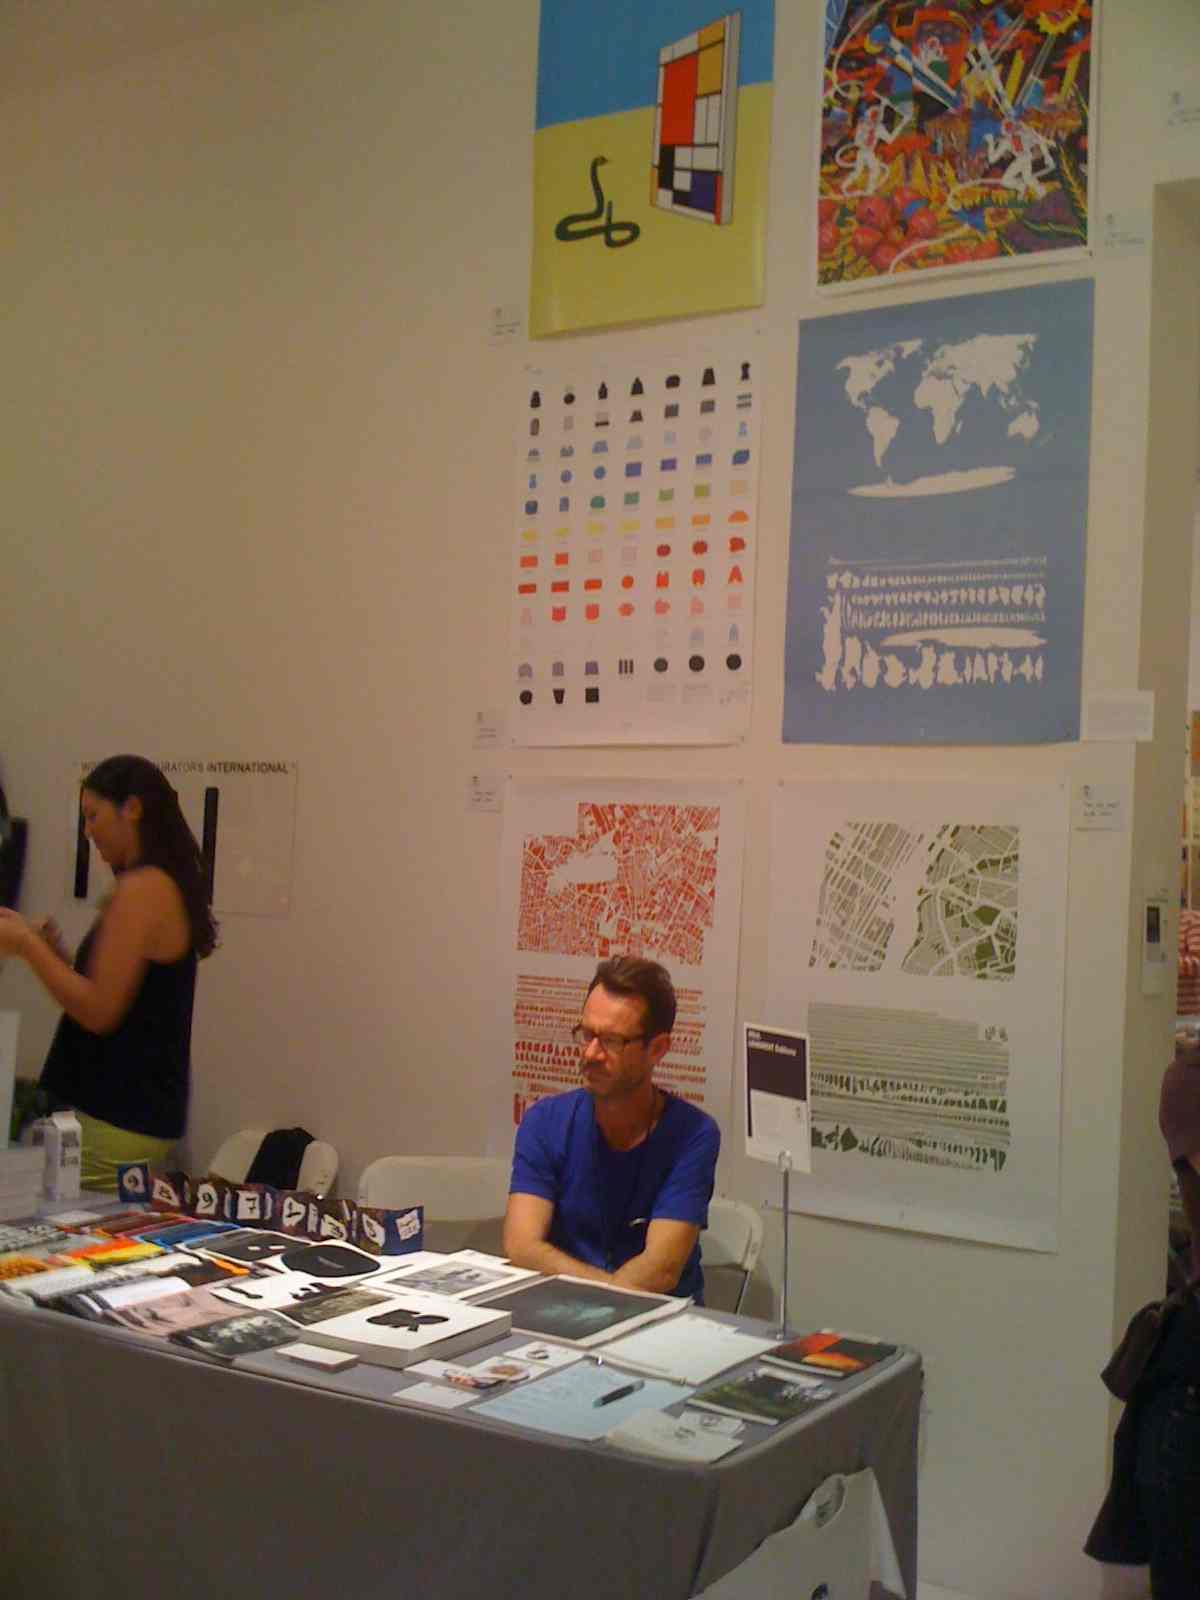 lendroit, éditiions, new york book fair, printed matters, rennes, new york, mathieu renard